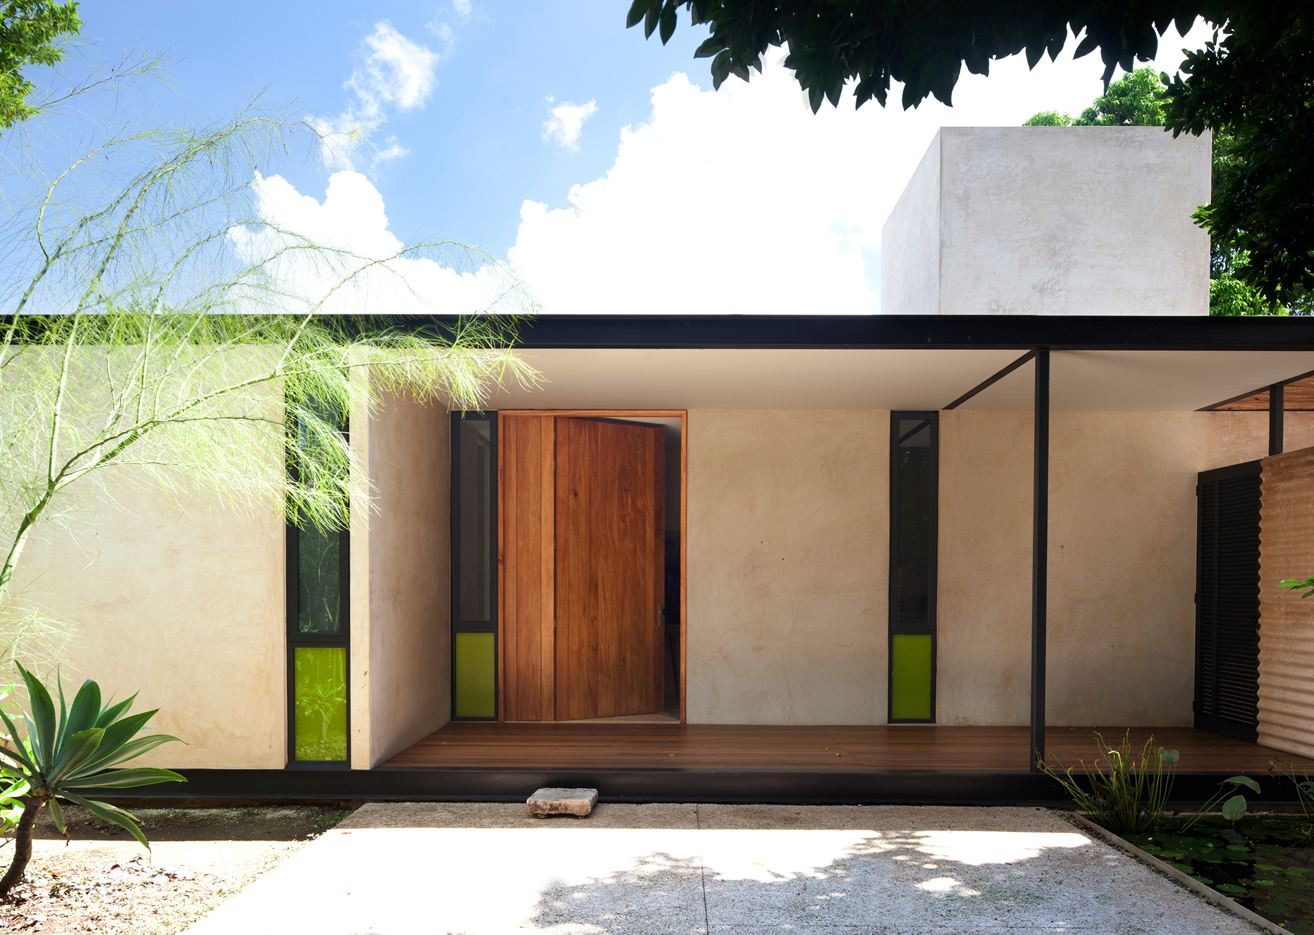 Itzimna House in Mérida, Mexico by Reyes Rios + Larrain Arquitectos